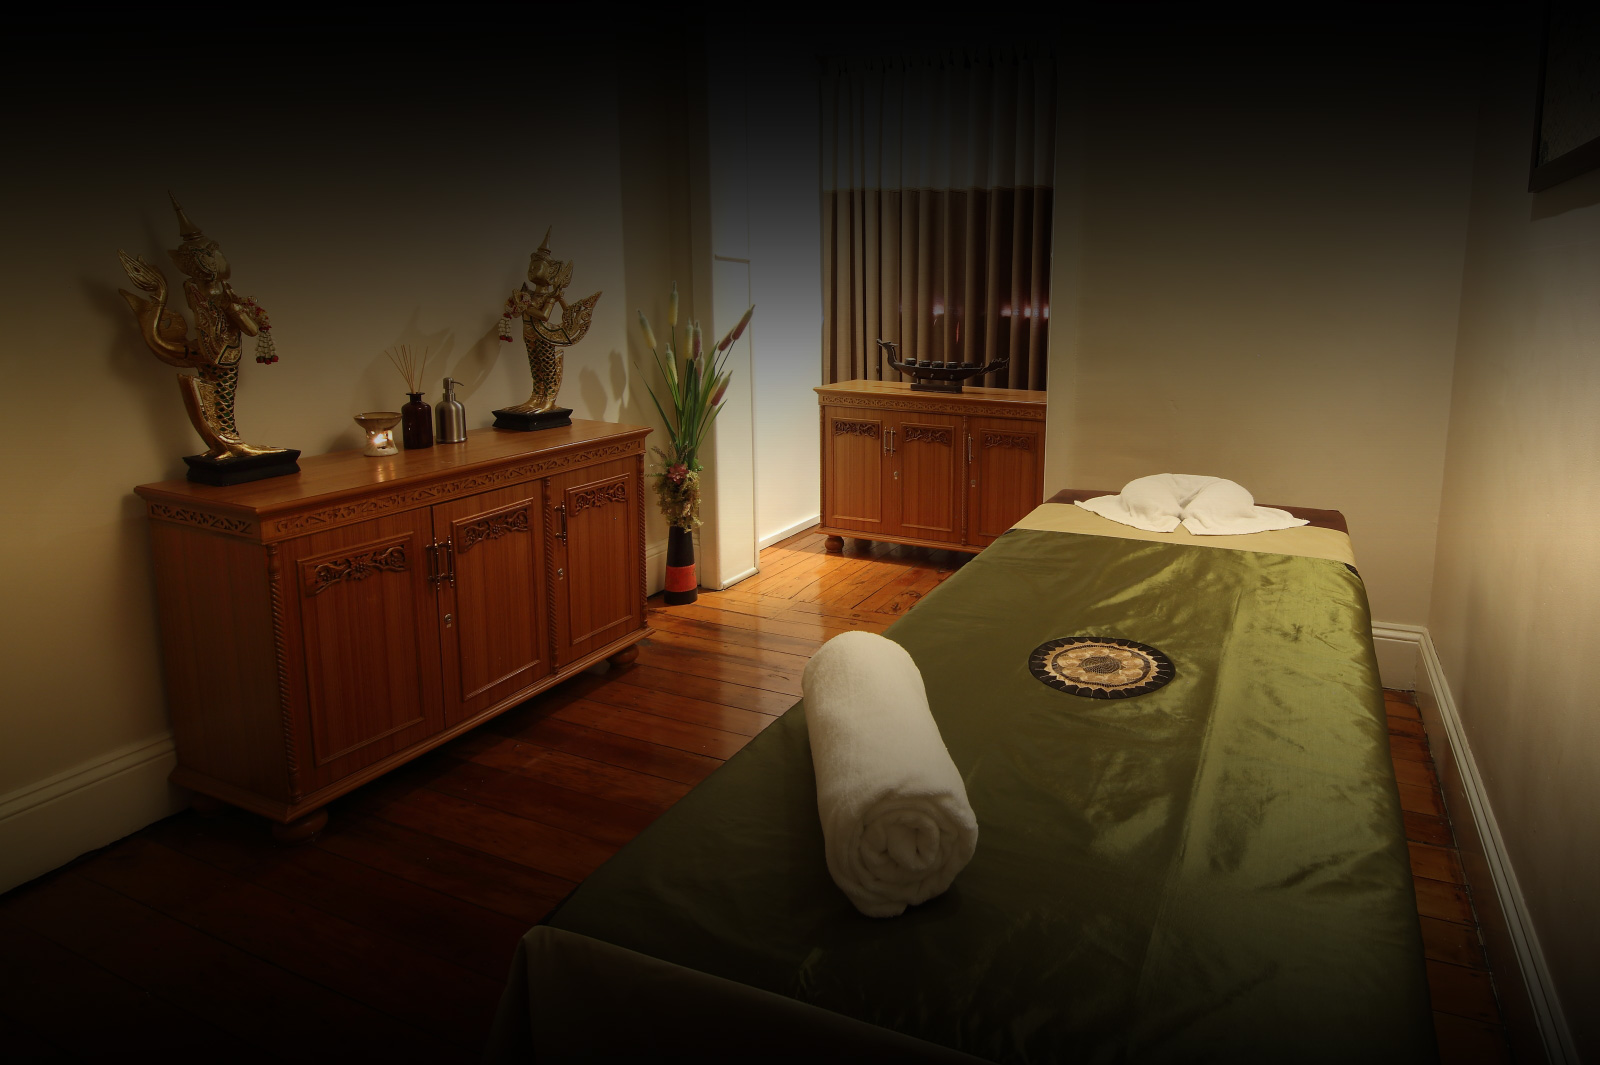 Ancient Treatment of Healing at Pyrmont